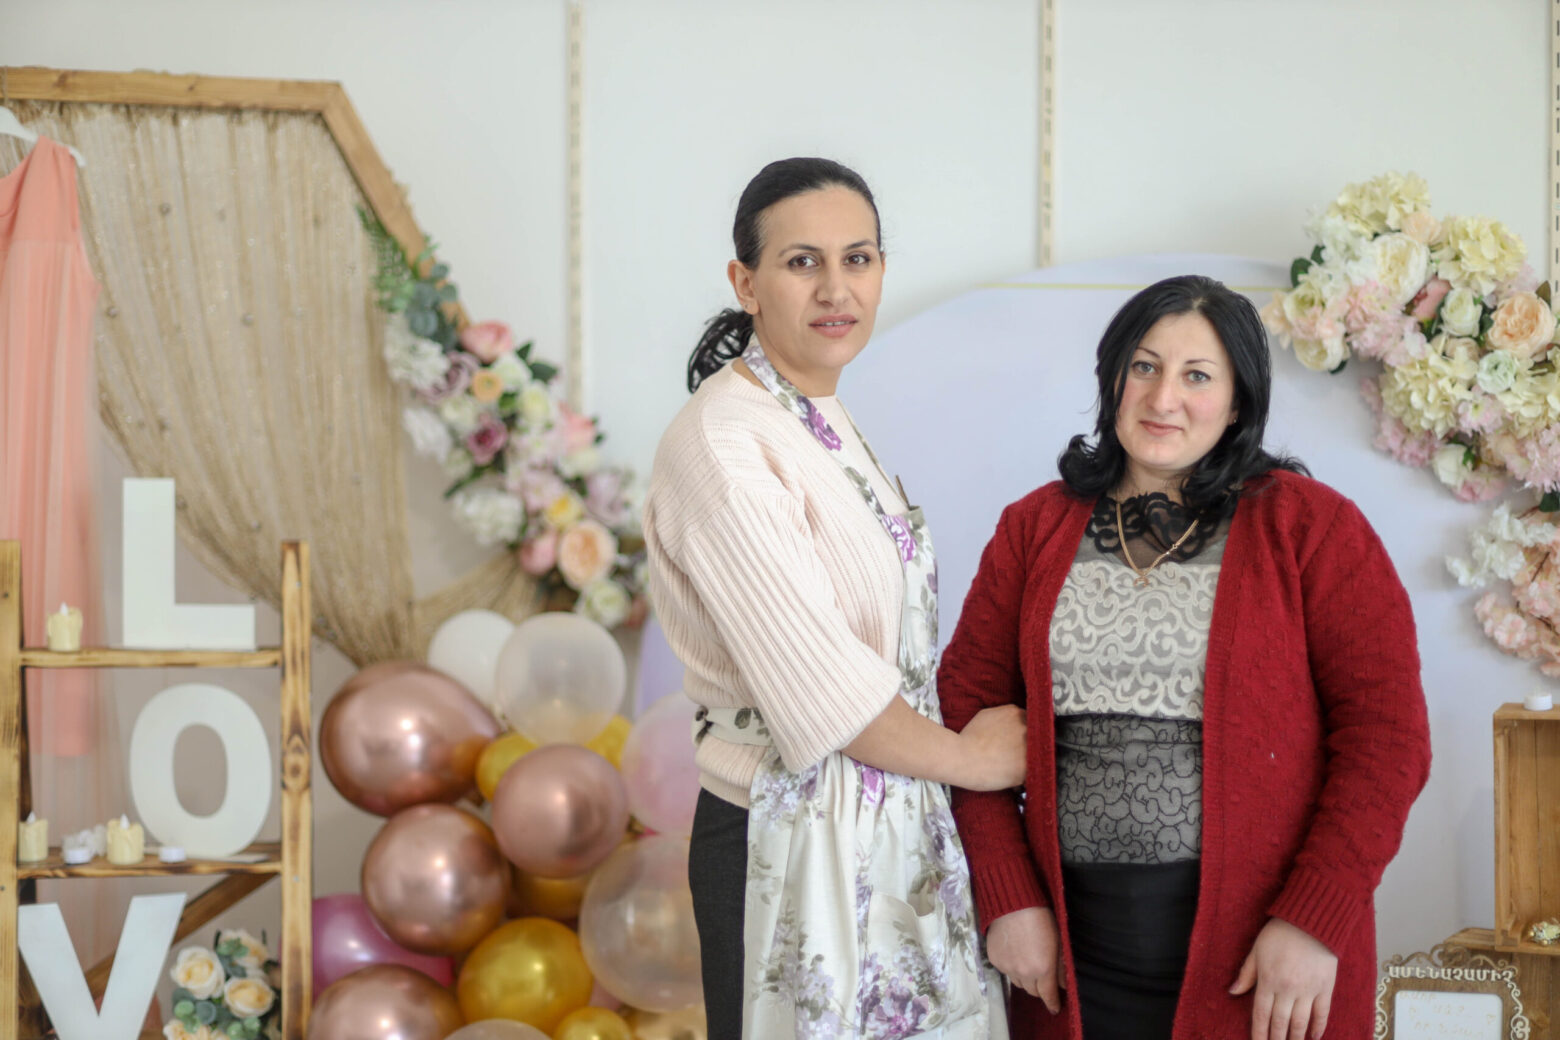 Strengthening Stability and Resilience of the Bordering Communities of Armenia